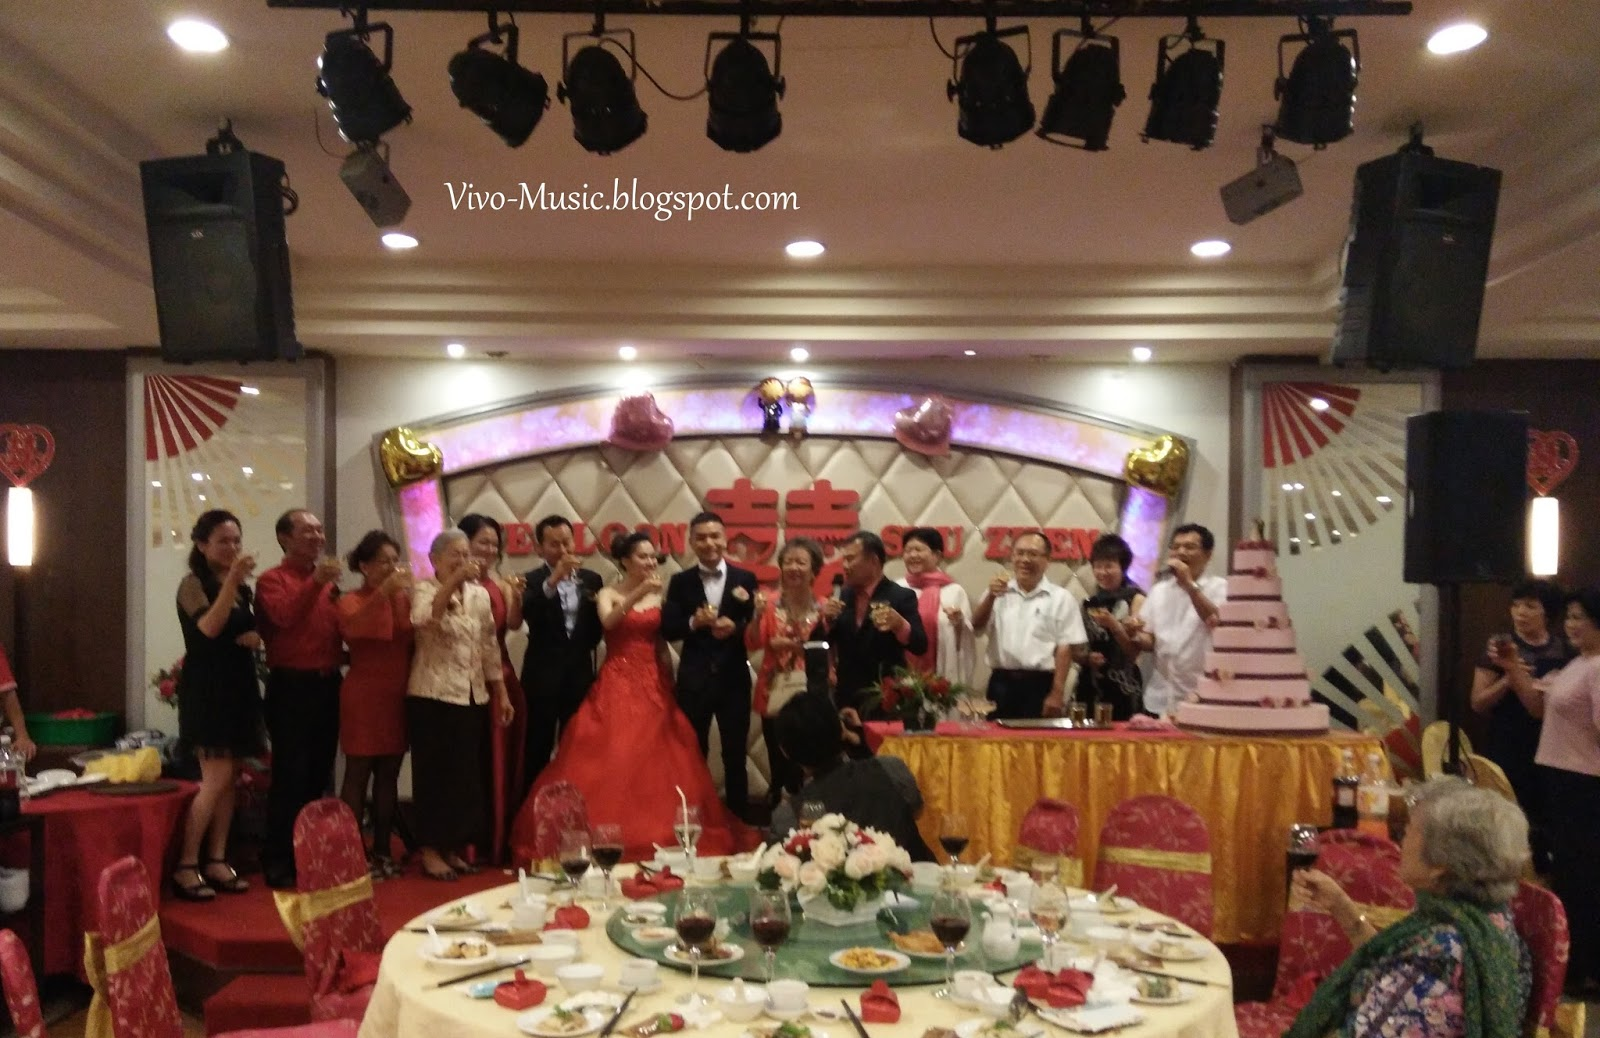 Vivo music live bandkl its another beautiful night thankyou so much to wei loon shu zhen for having us on your big day it is our pleasure to be a part of it junglespirit Images